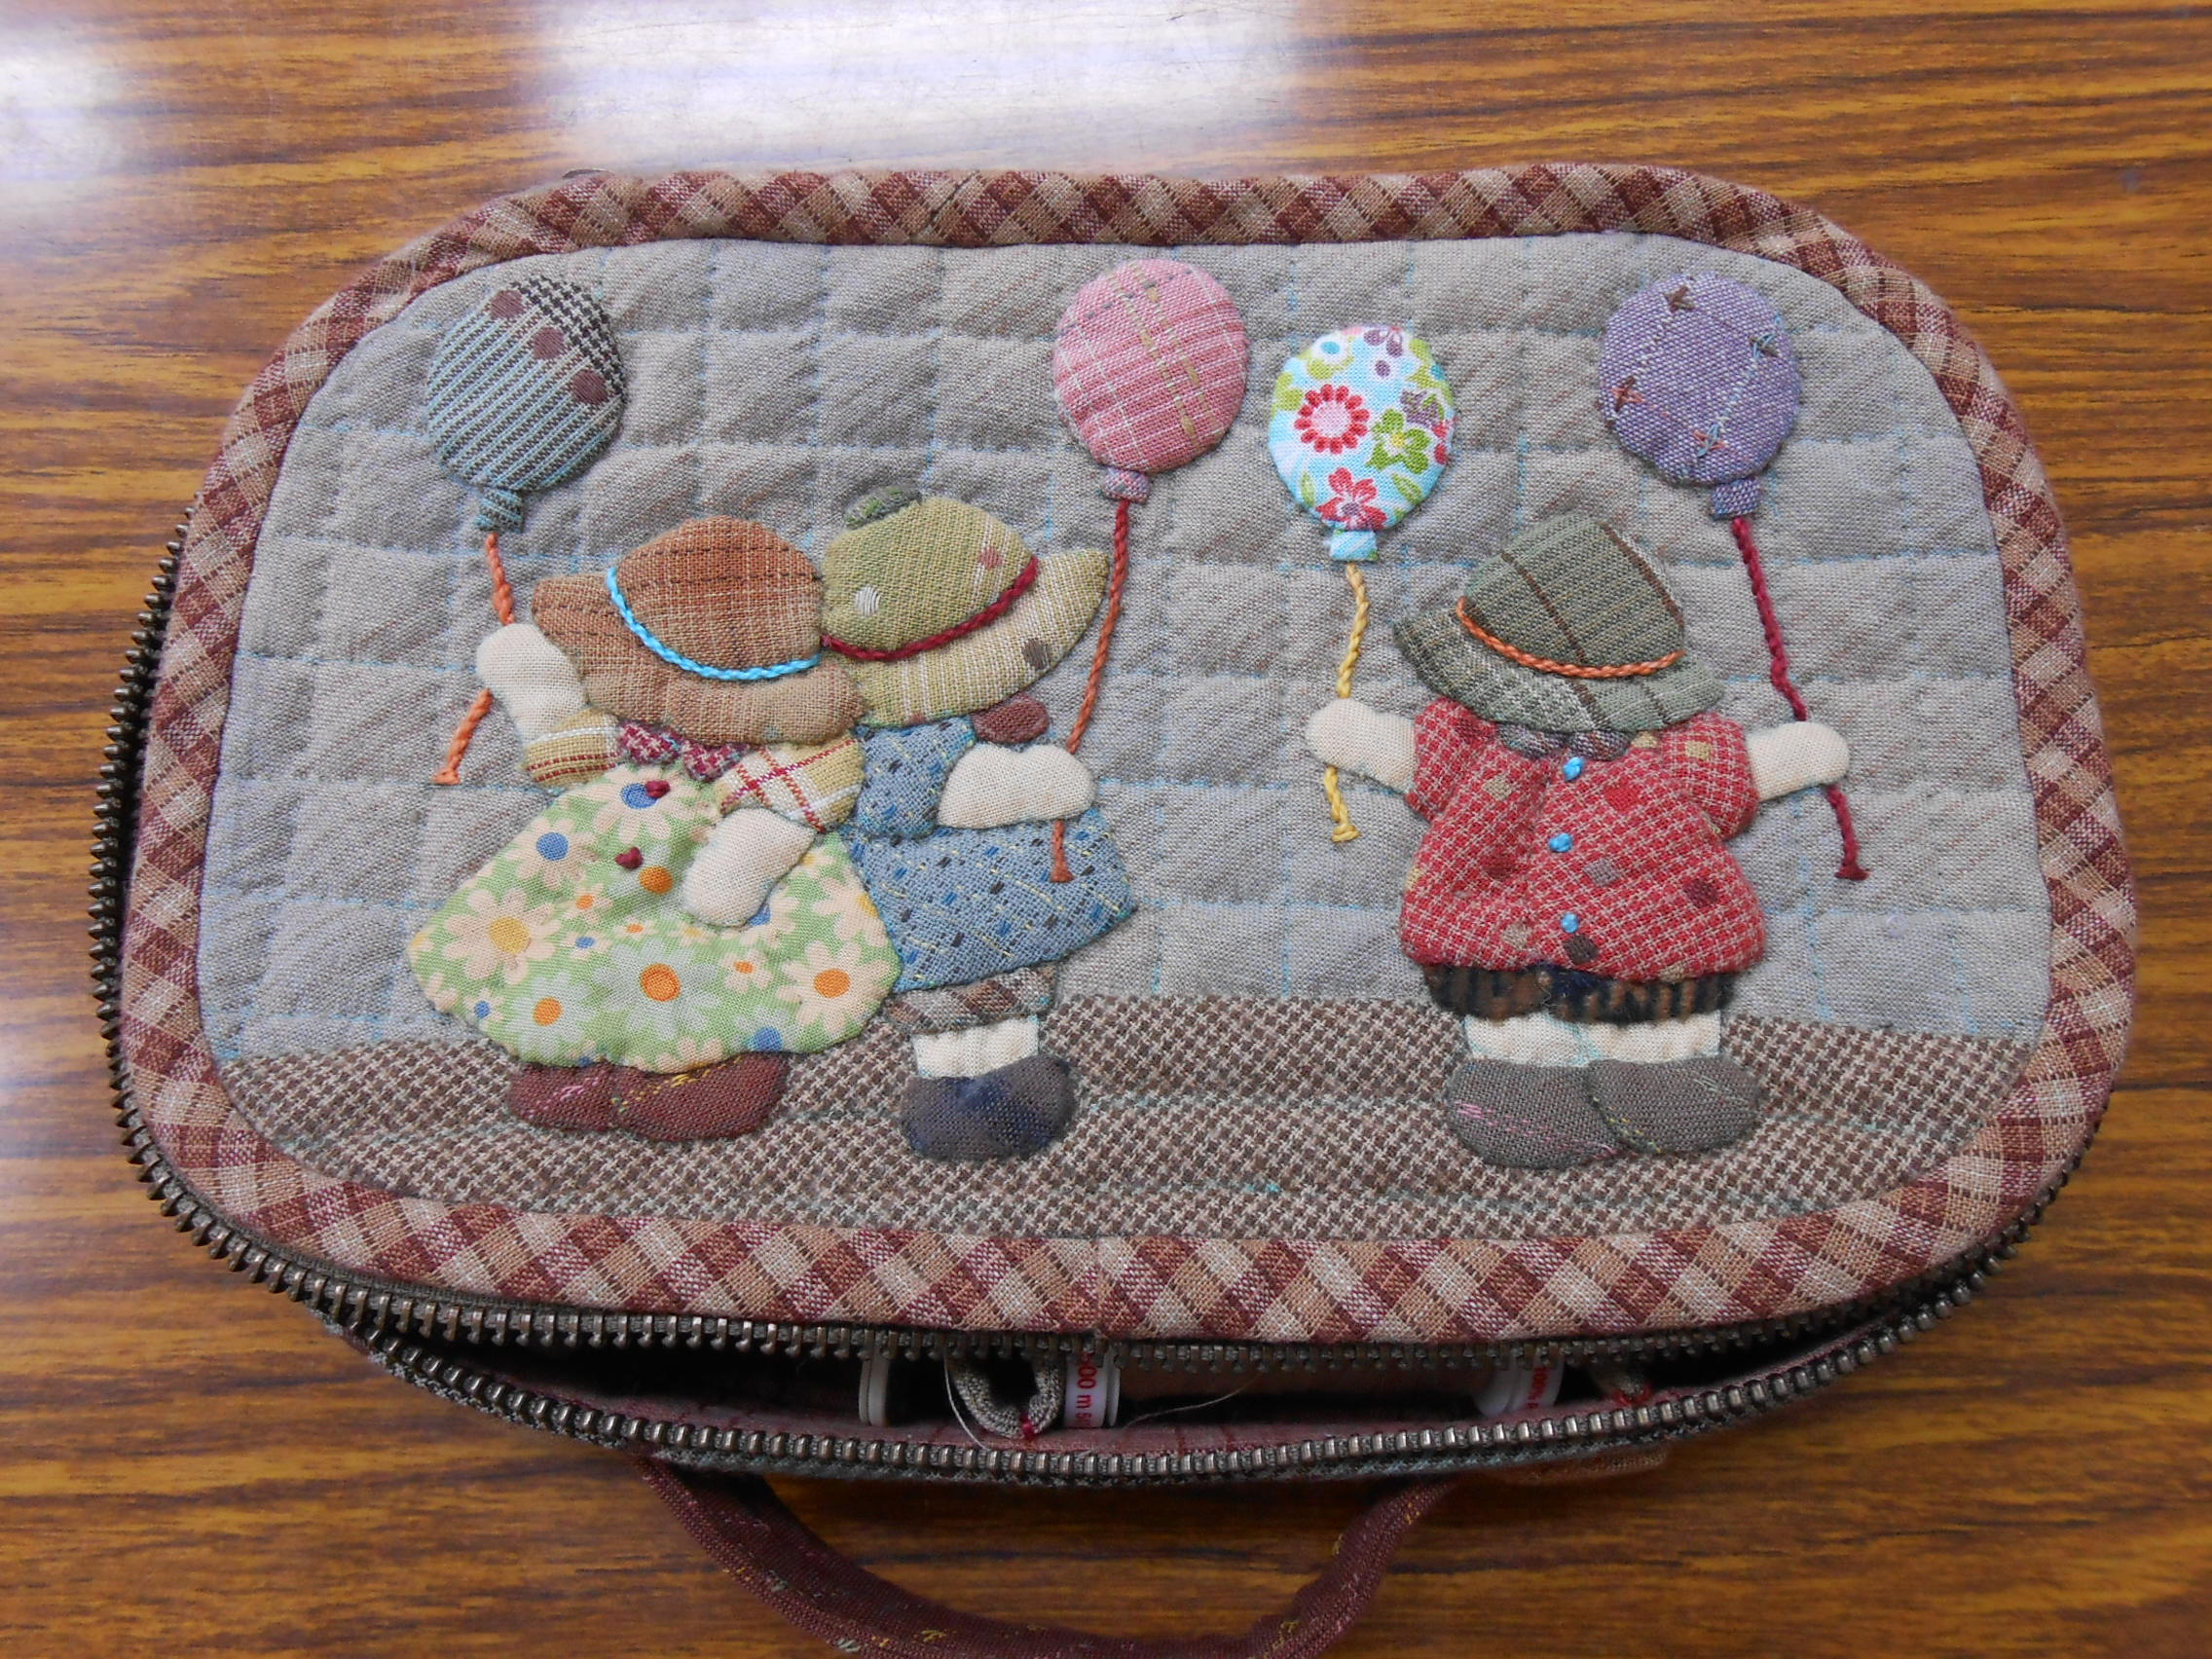 Sewing pouch